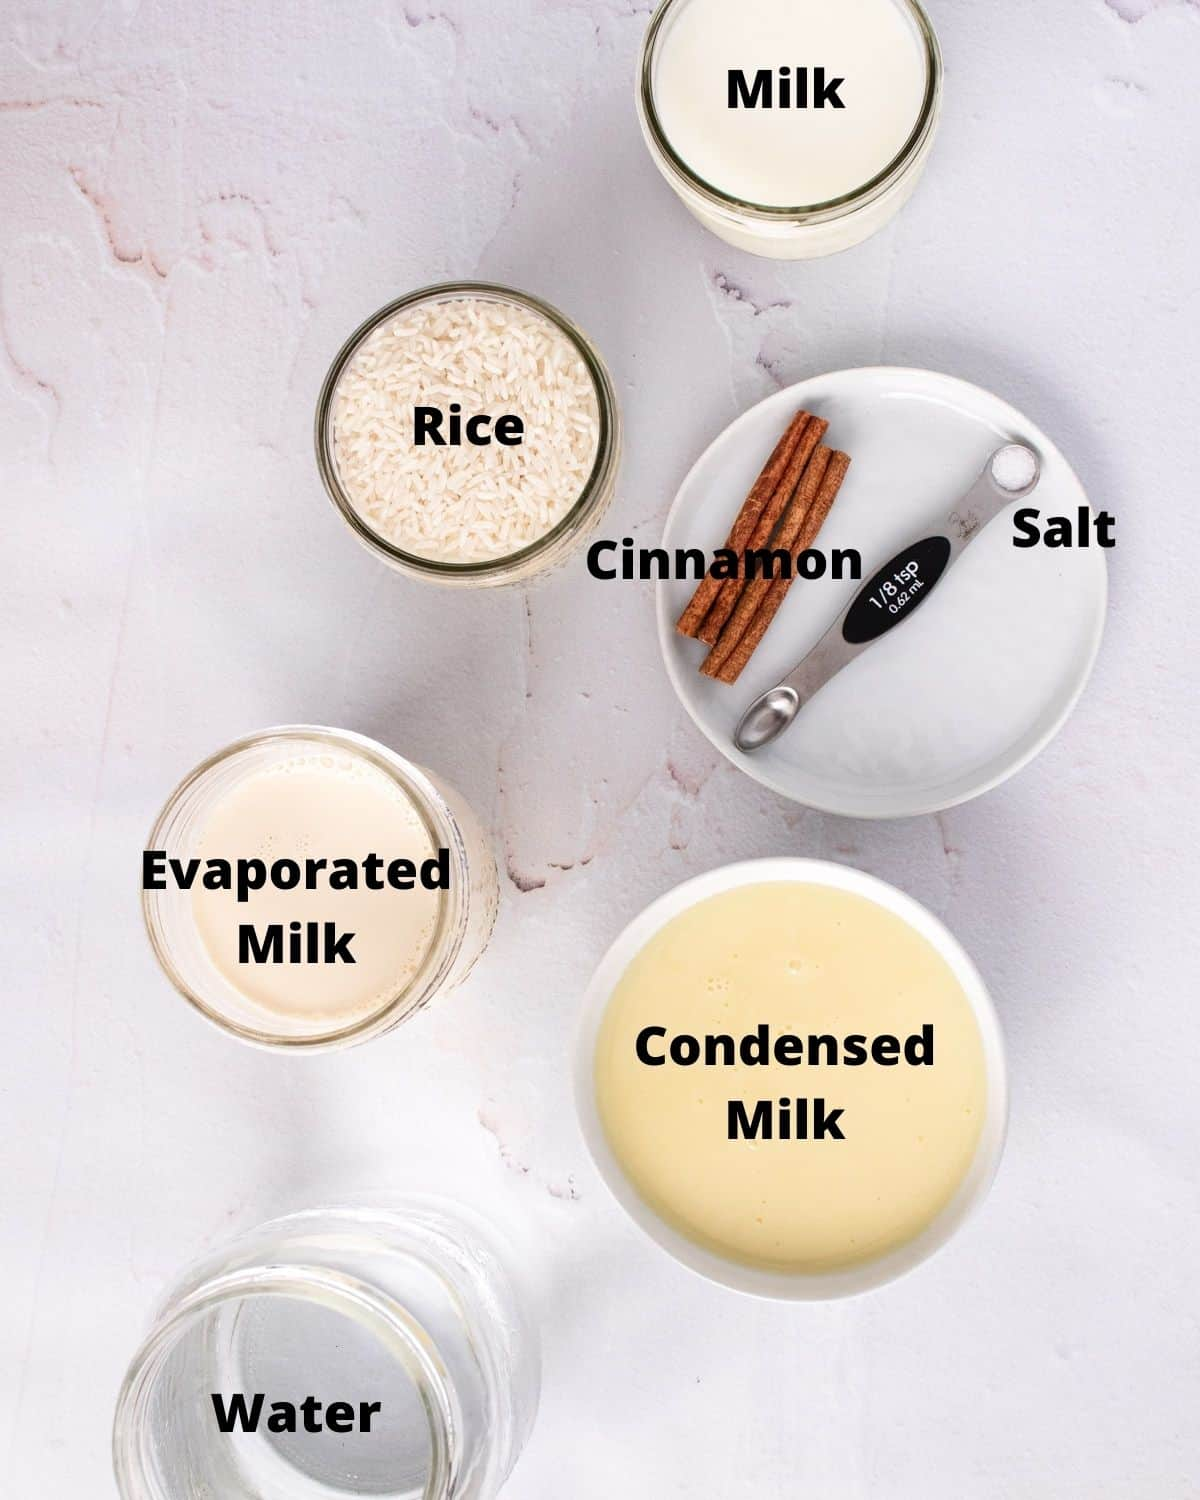 ingredients needed and labeled